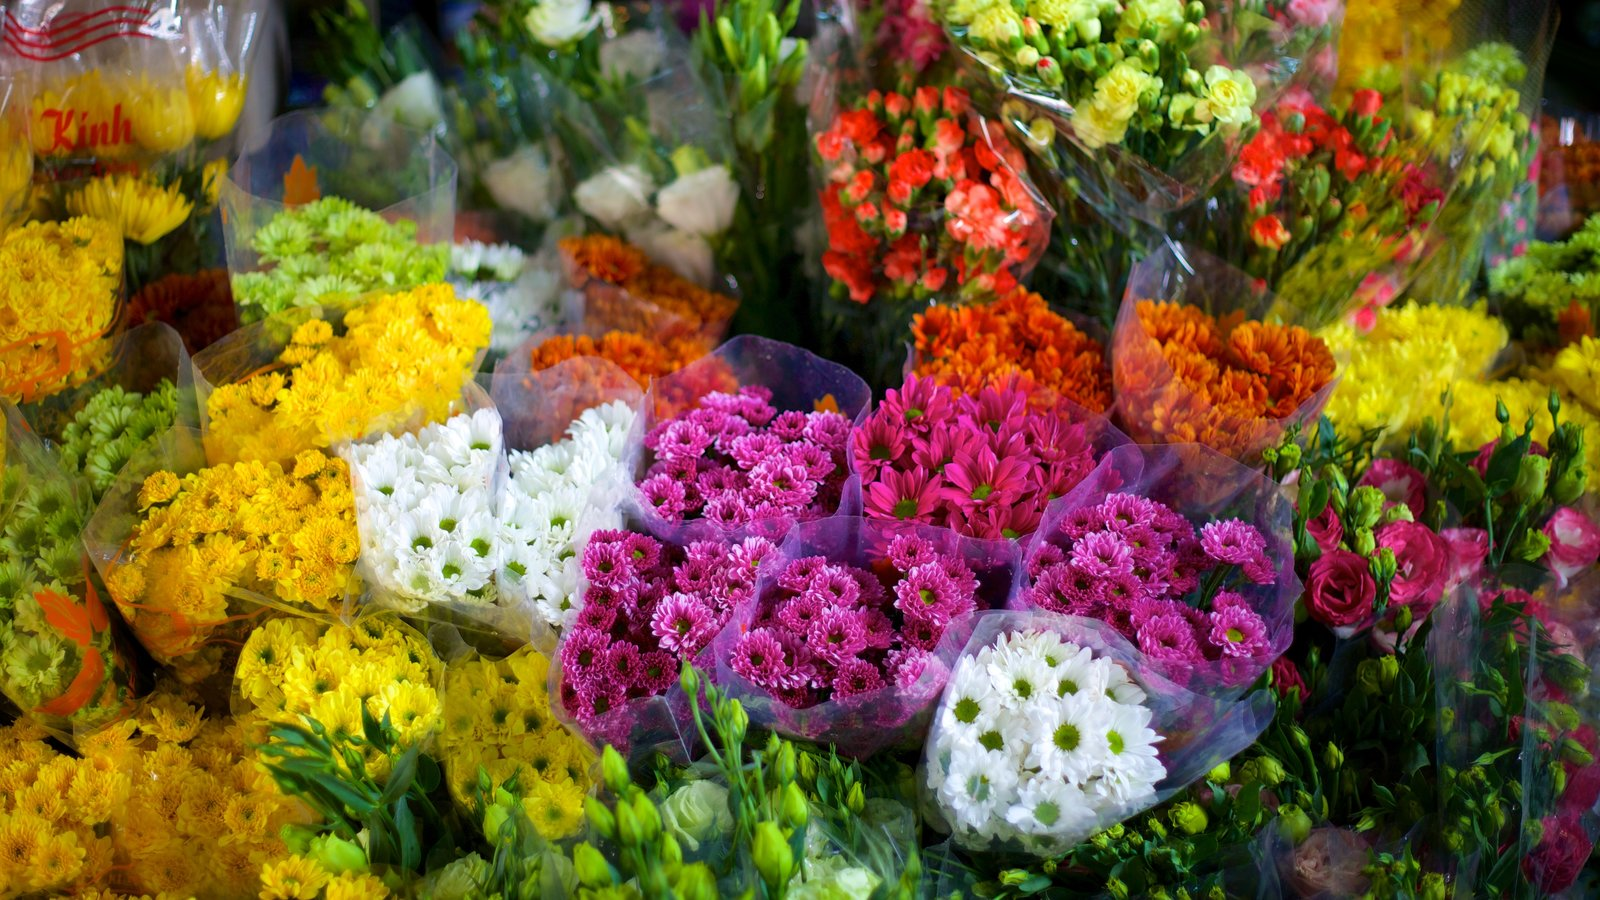 Ben Thanh Market which includes flowers